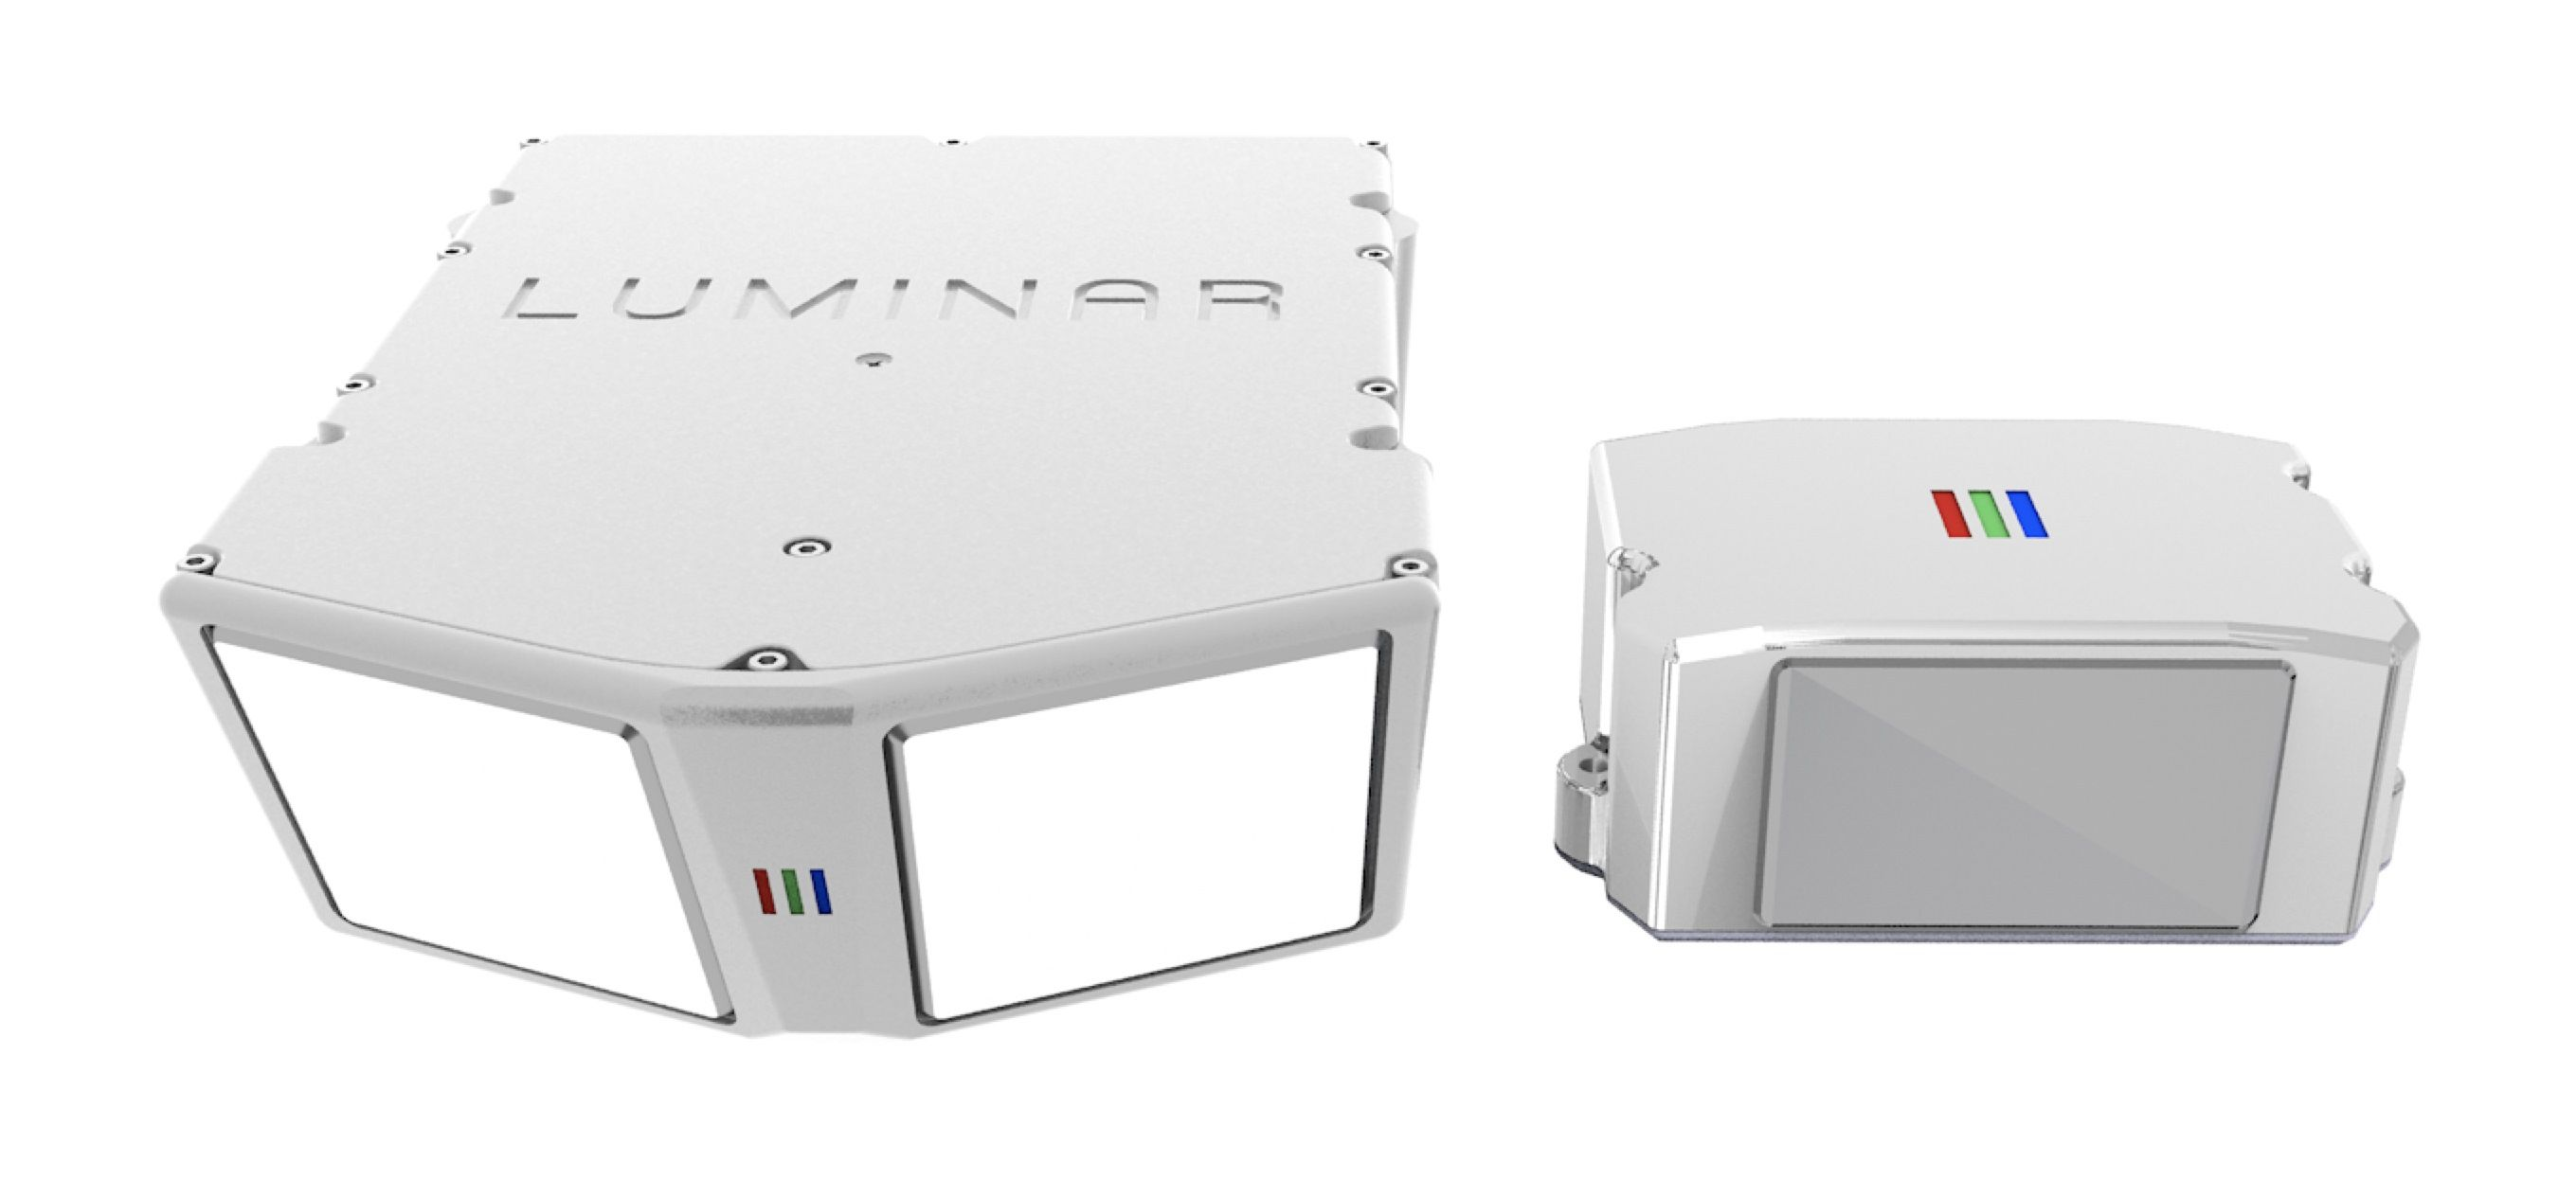 Luminar Eyes Production Vehicles With 100m Round And New Iris Lidar Platform Techcrunch Rear View Mirror Vehicles